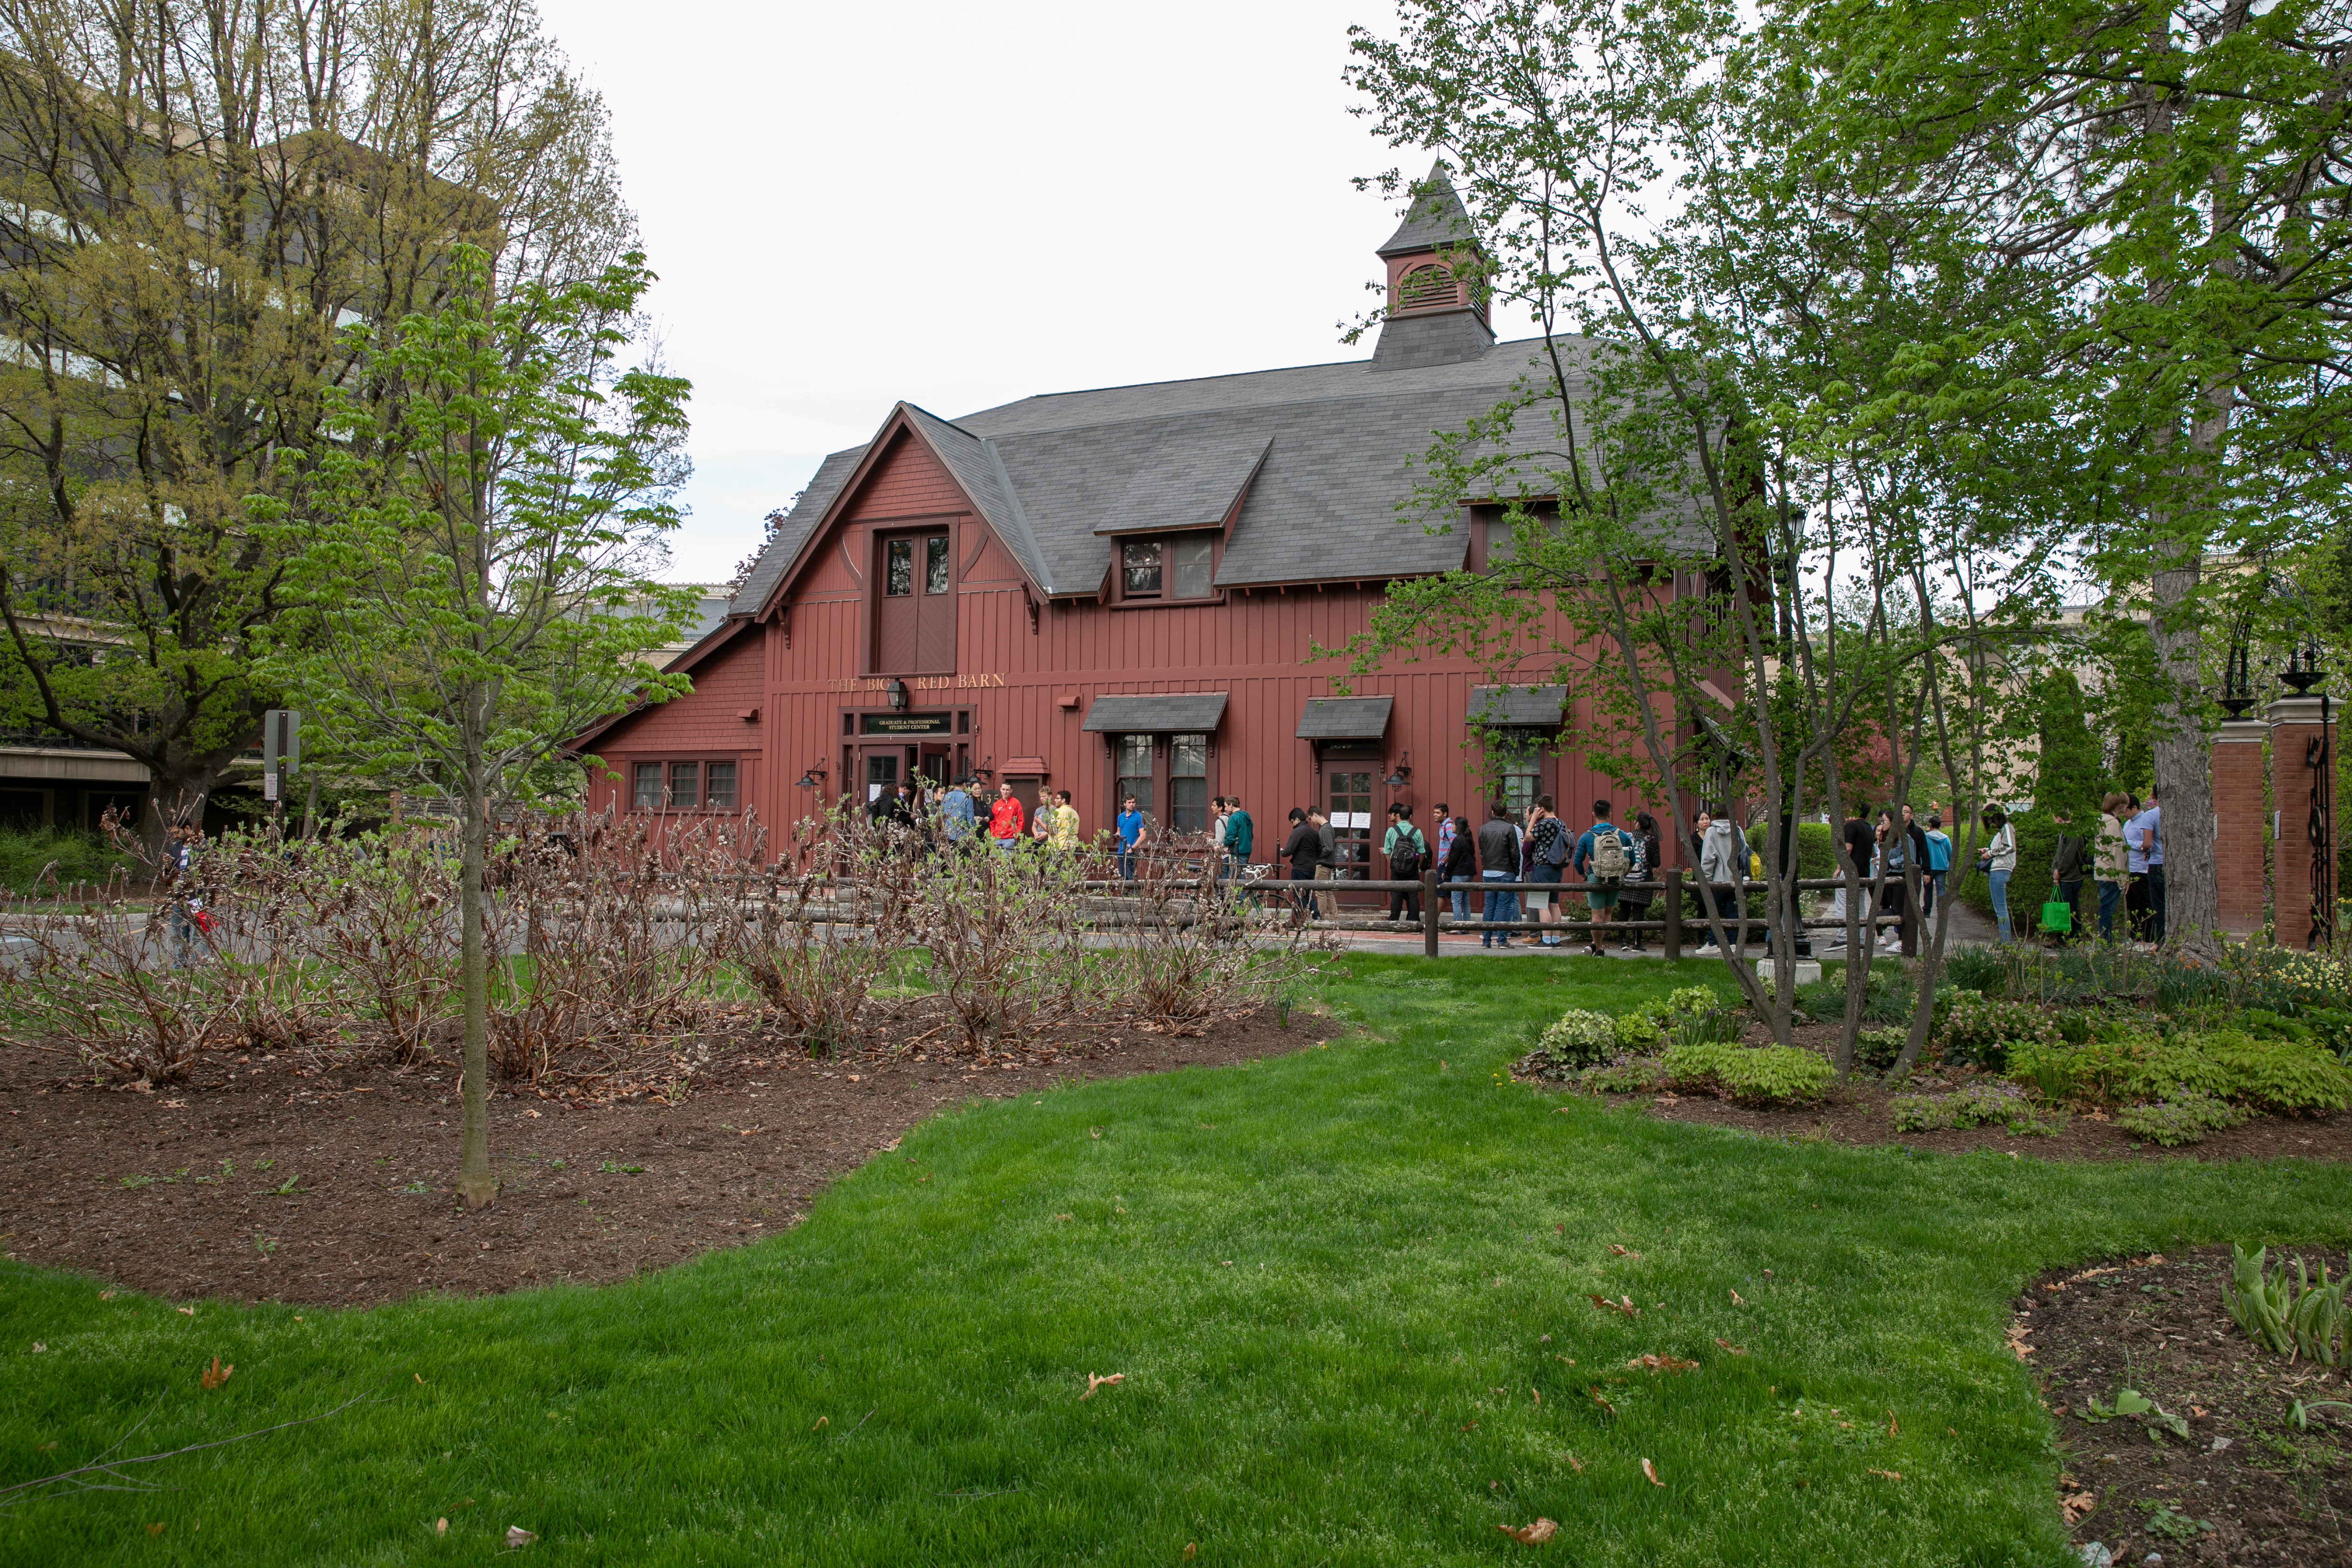 Students and postdocs line up outside the Big Red Barn for a year-end barbecue